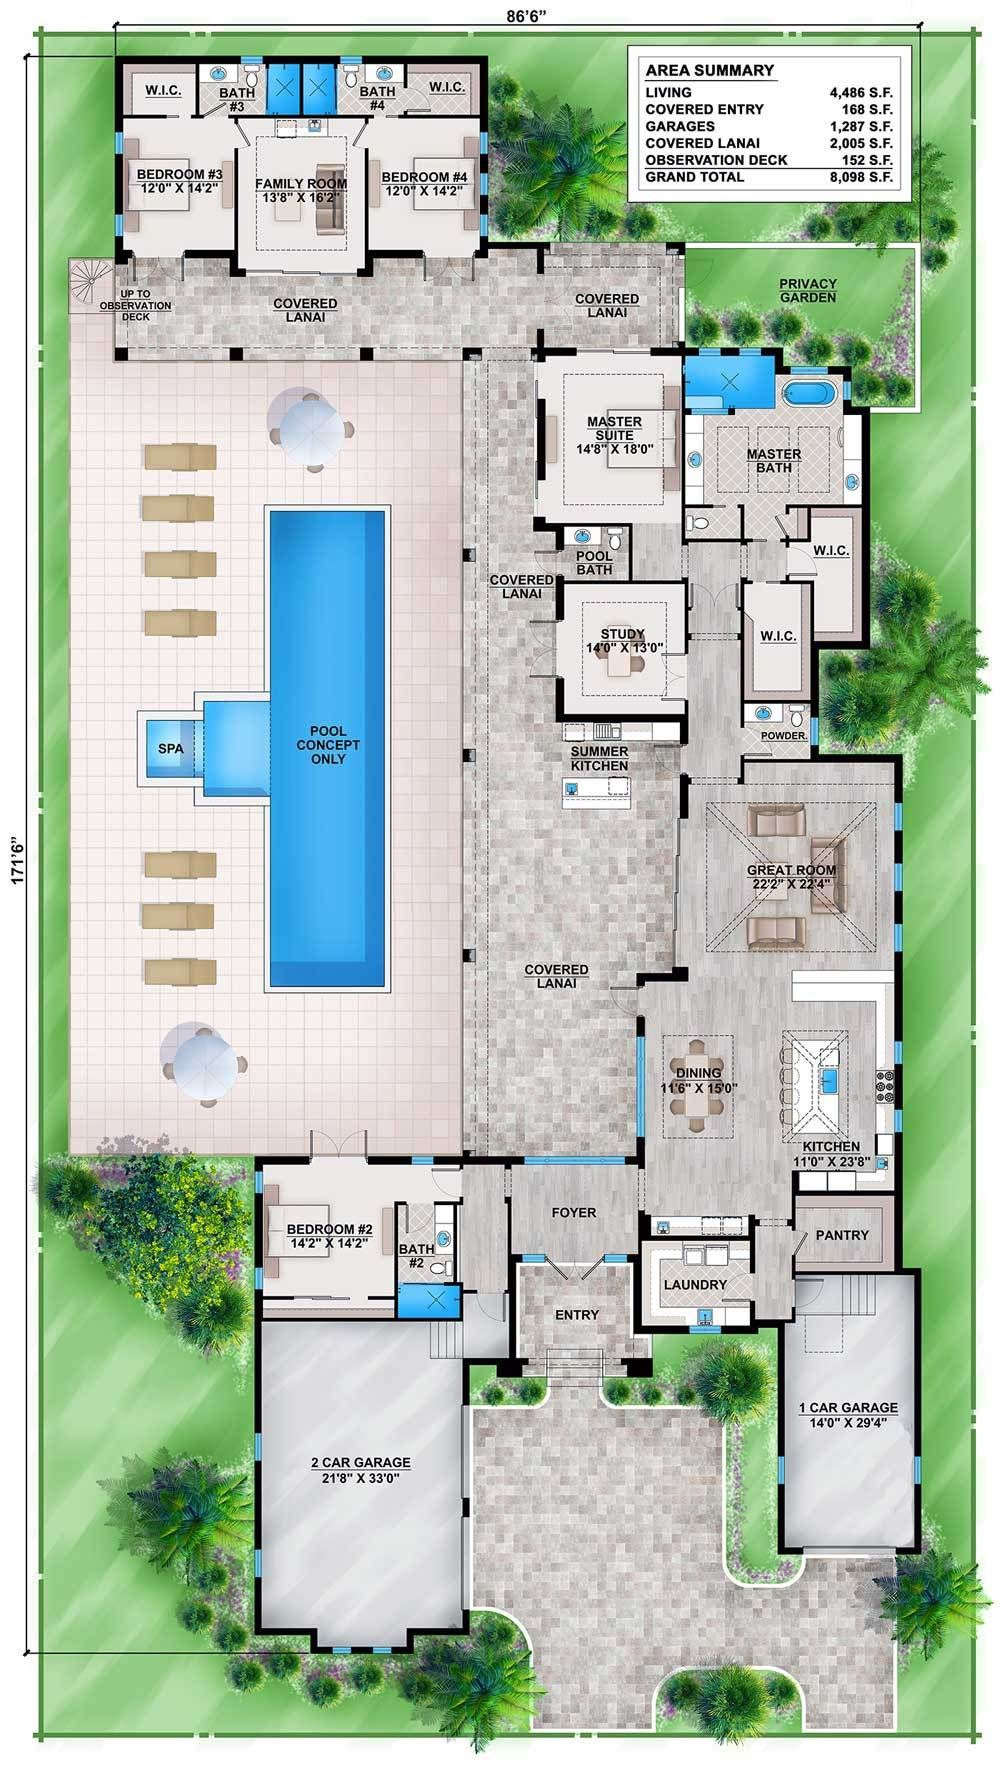 Garage with Guest House Plans Awesome Plan Bw Florida House Plan with Guest Wing